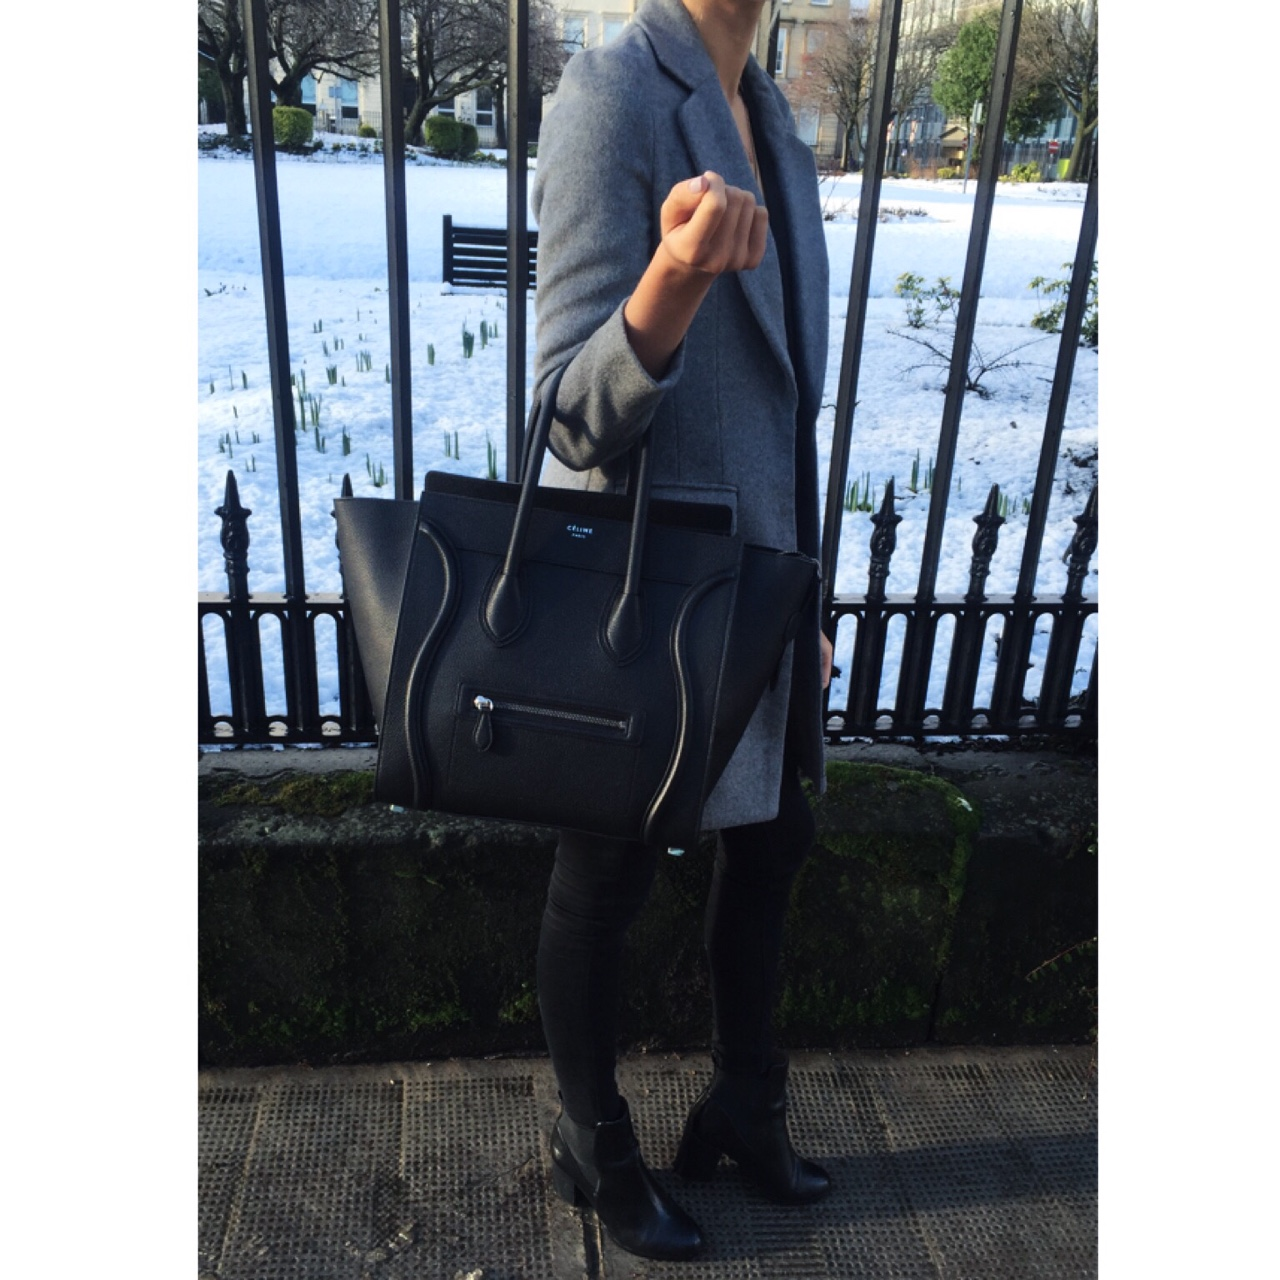 Winter Wear Long Grey Coat from Asos, Black Topshop Skinnies Styled with H&M Black Patent Booties and Black Céline Luggage Tote. //SHE